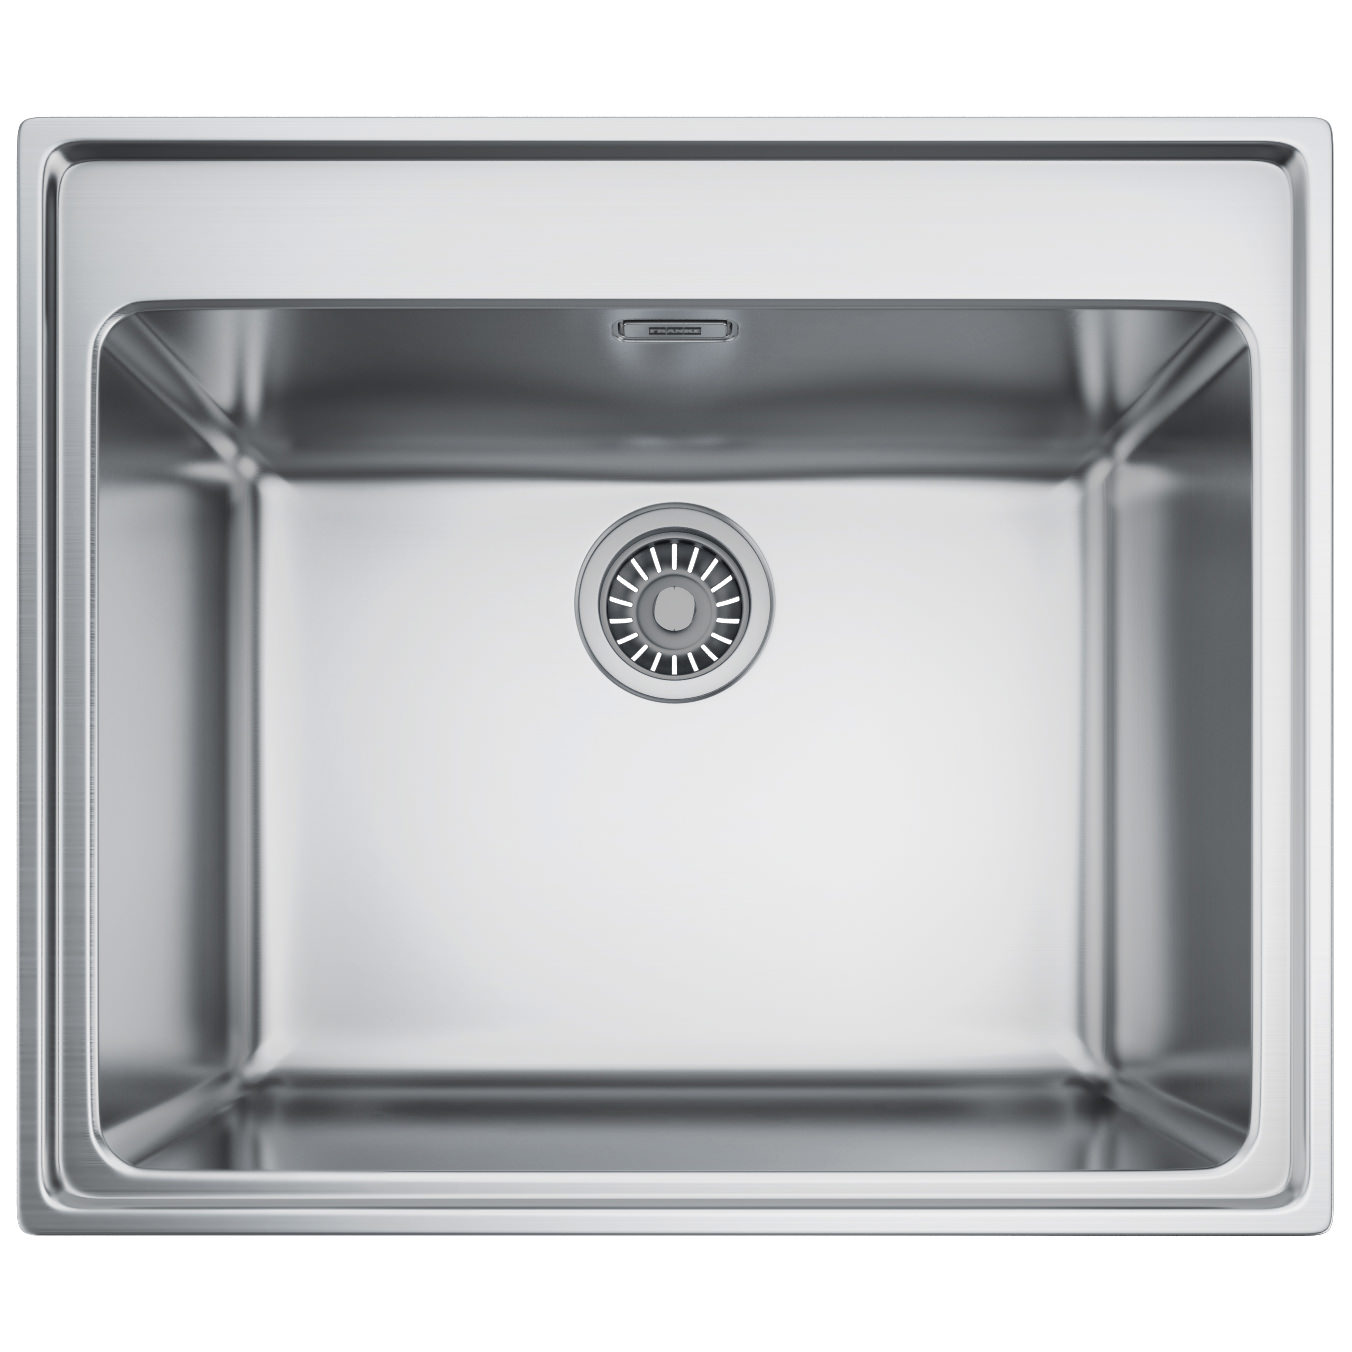 inset stainless steel kitchen sinks franke midas mtx 610 55 stainless steel 1 0 bowl inset 7530